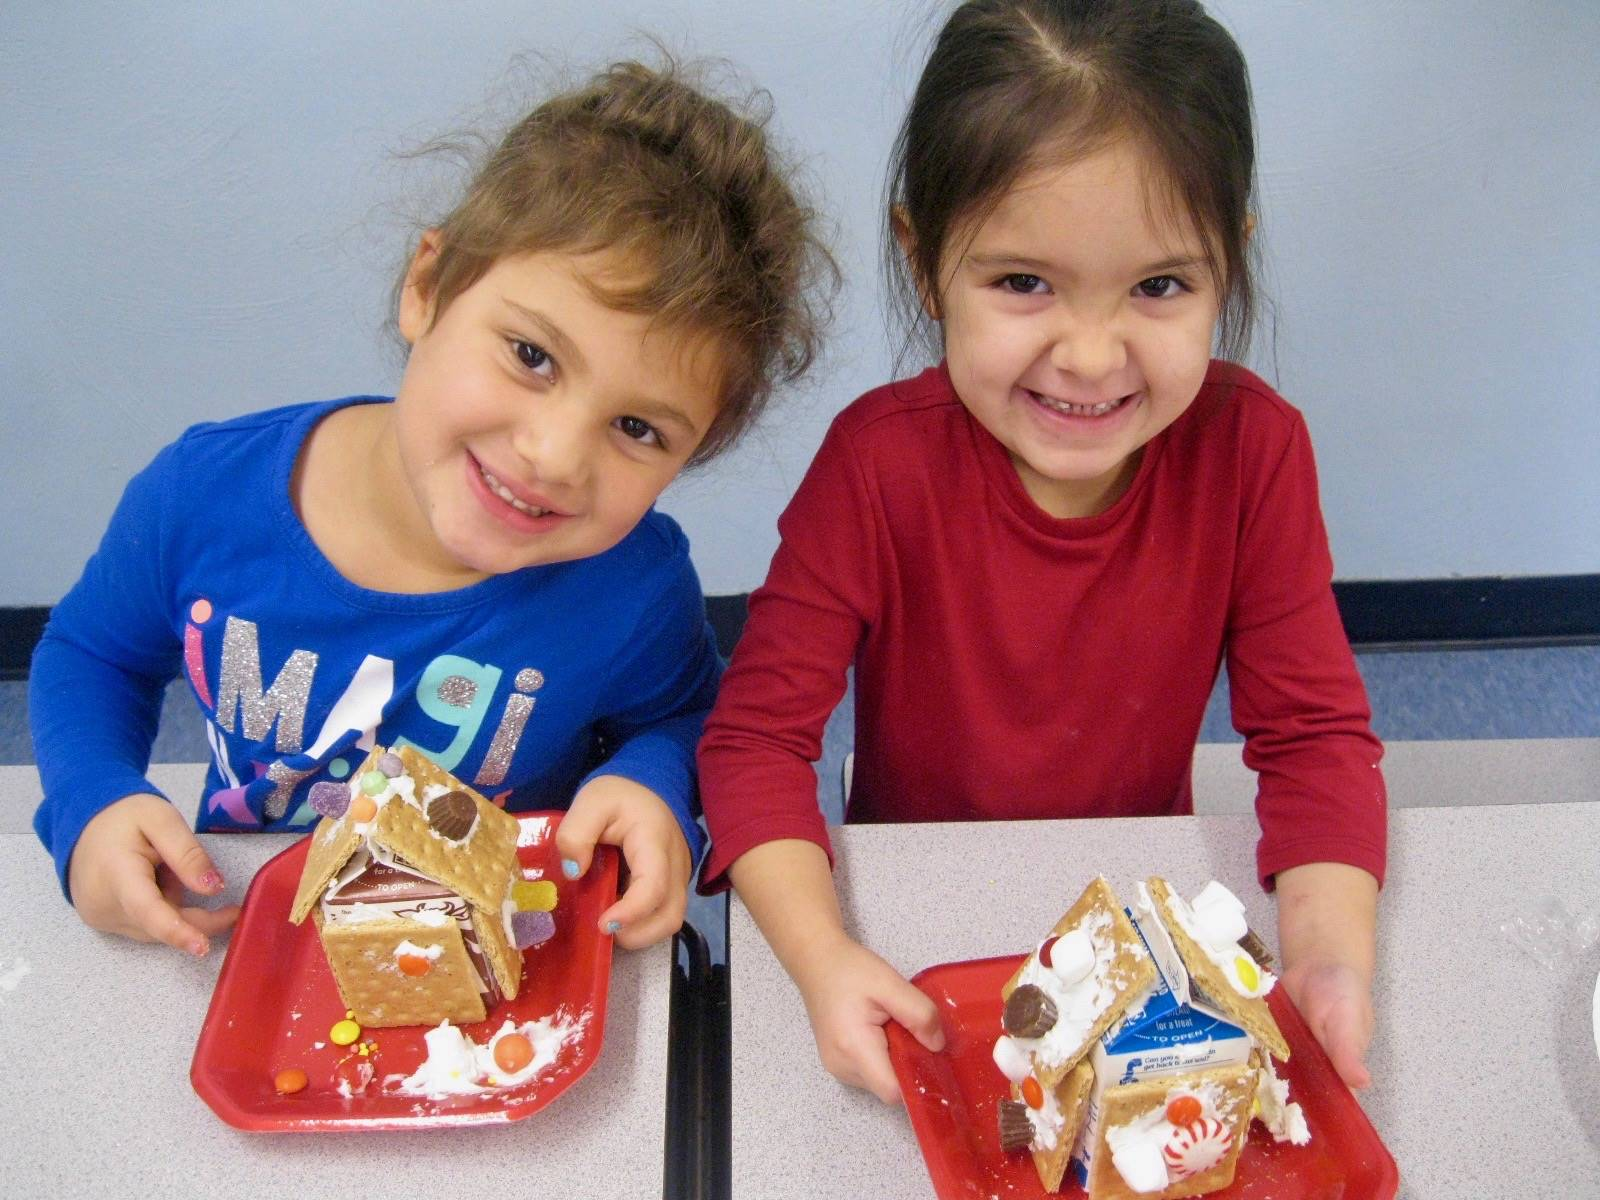 2 students show gingerbread houses.